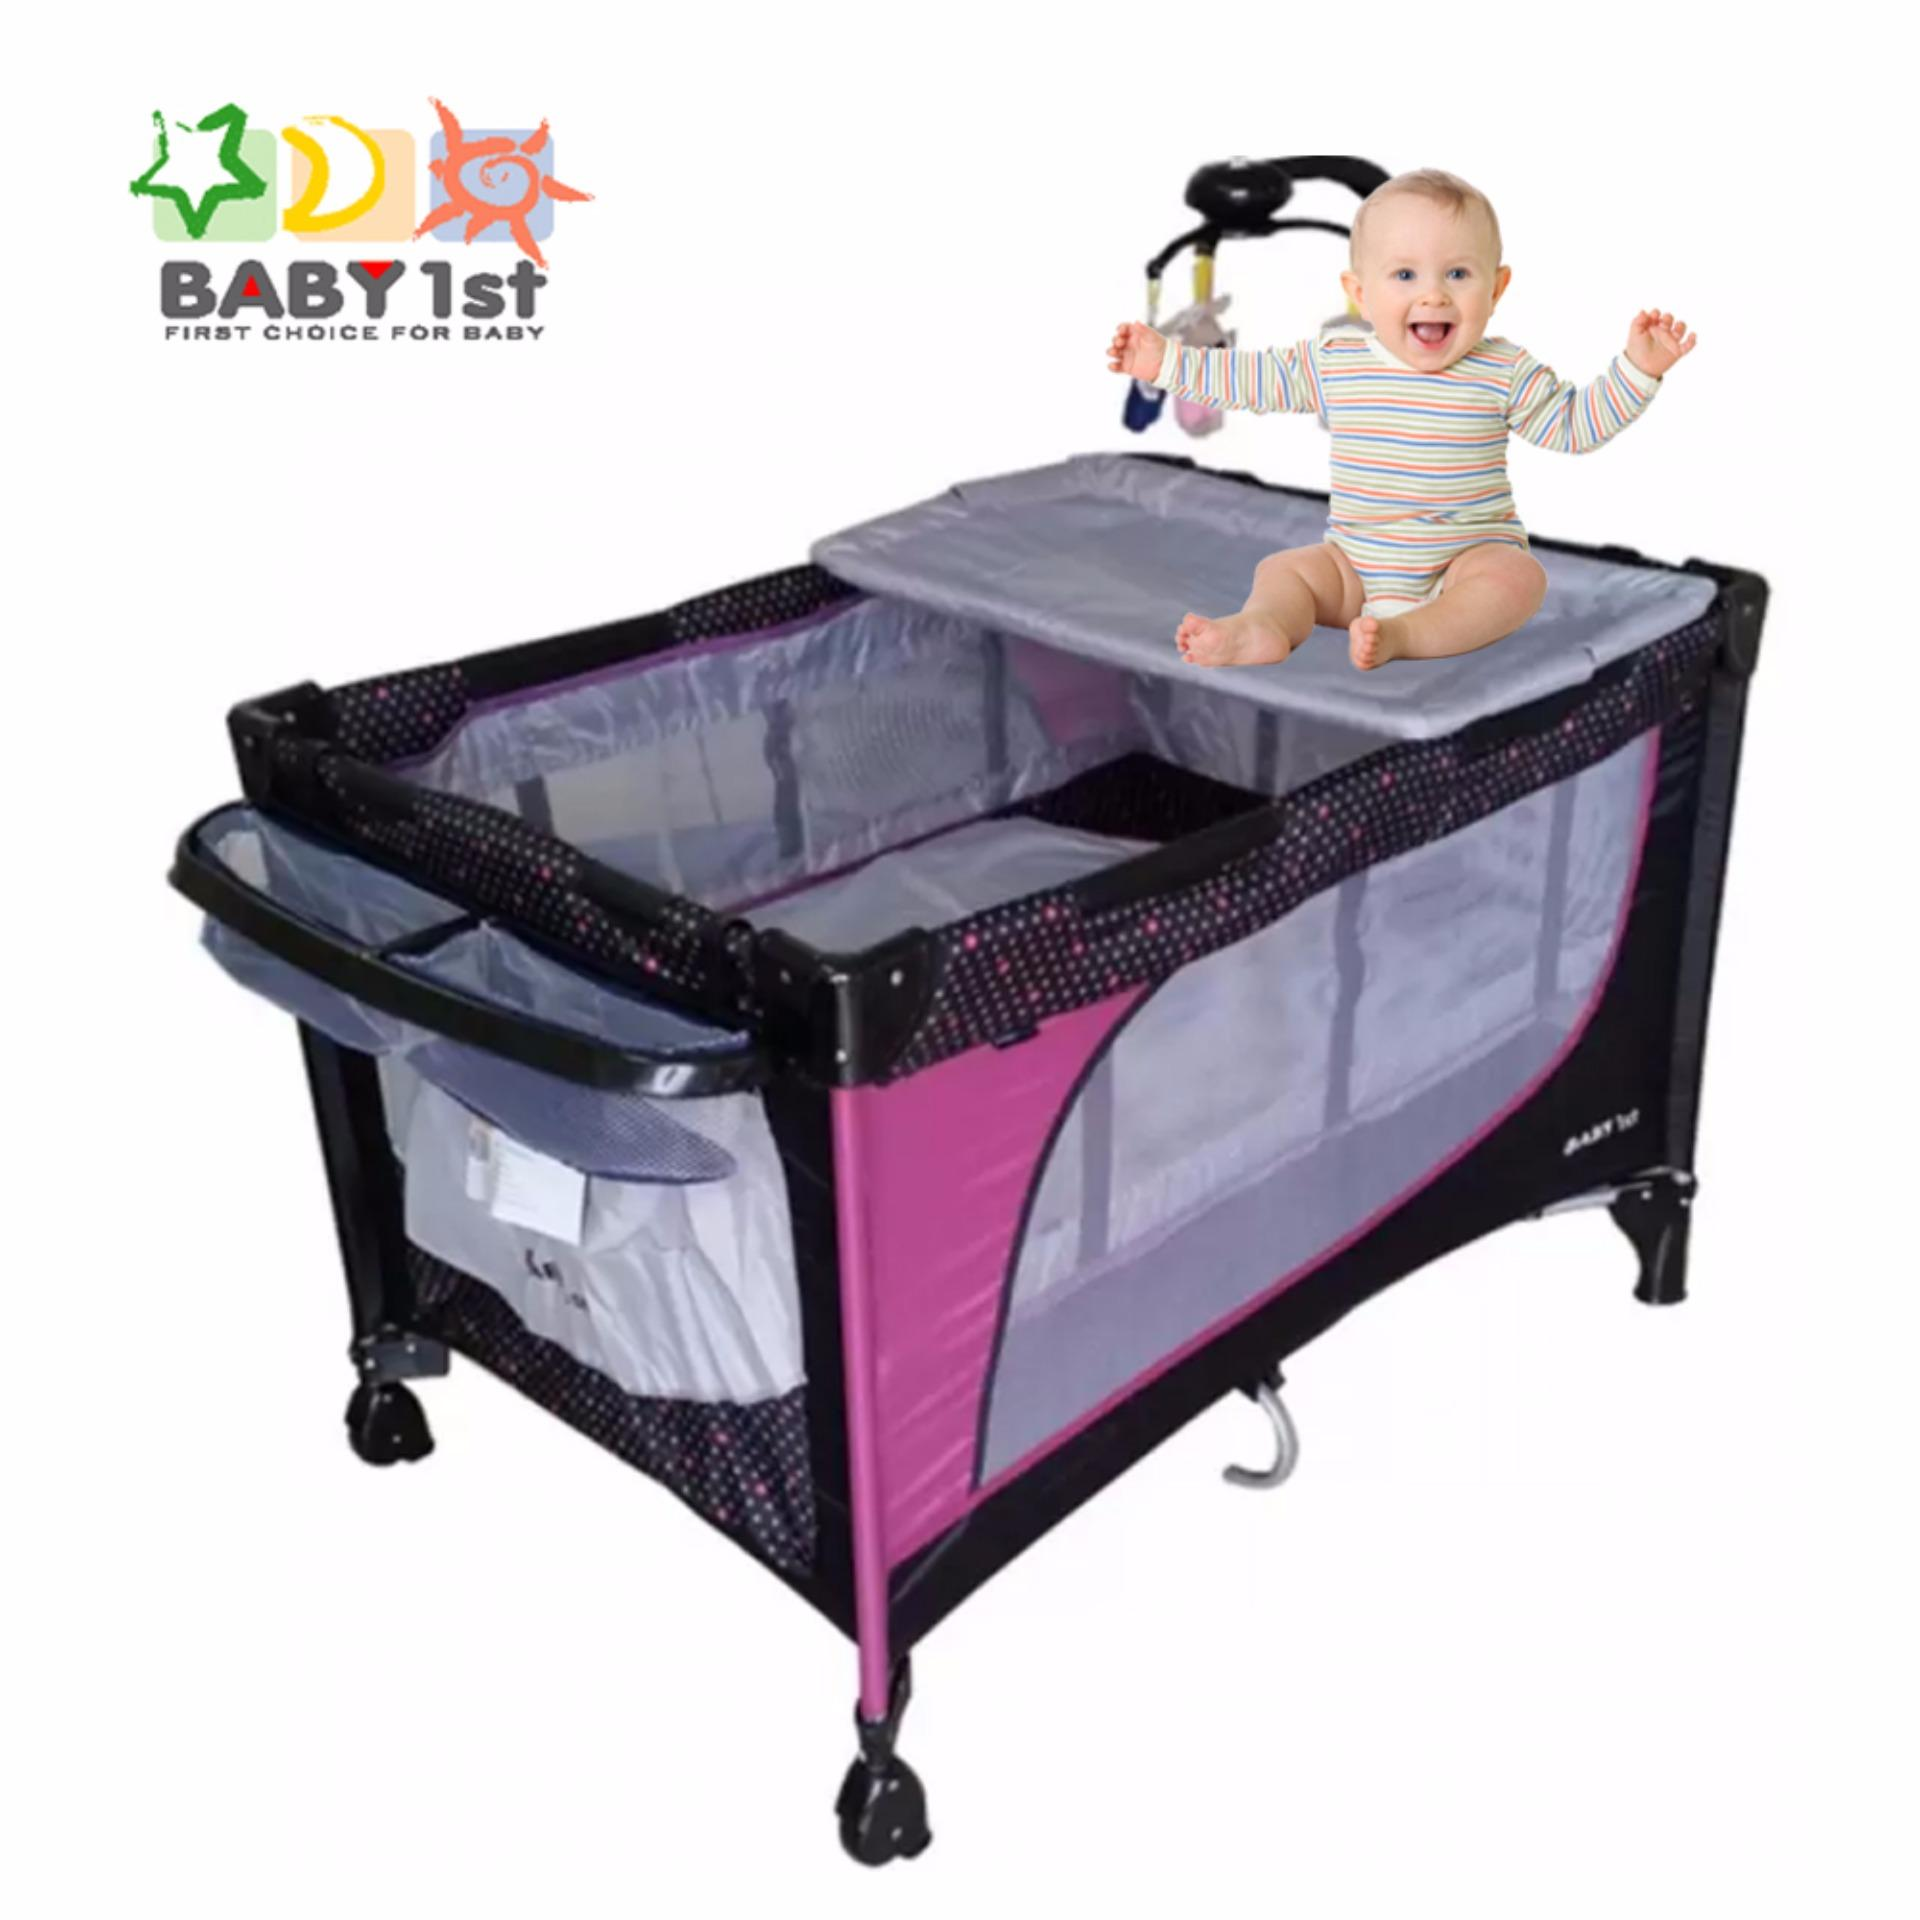 Crib for sale sulit com - Baby Cribs Yard Sales Baby Crib For Sale Online Philippines Baby 1st P510dcr New Baby